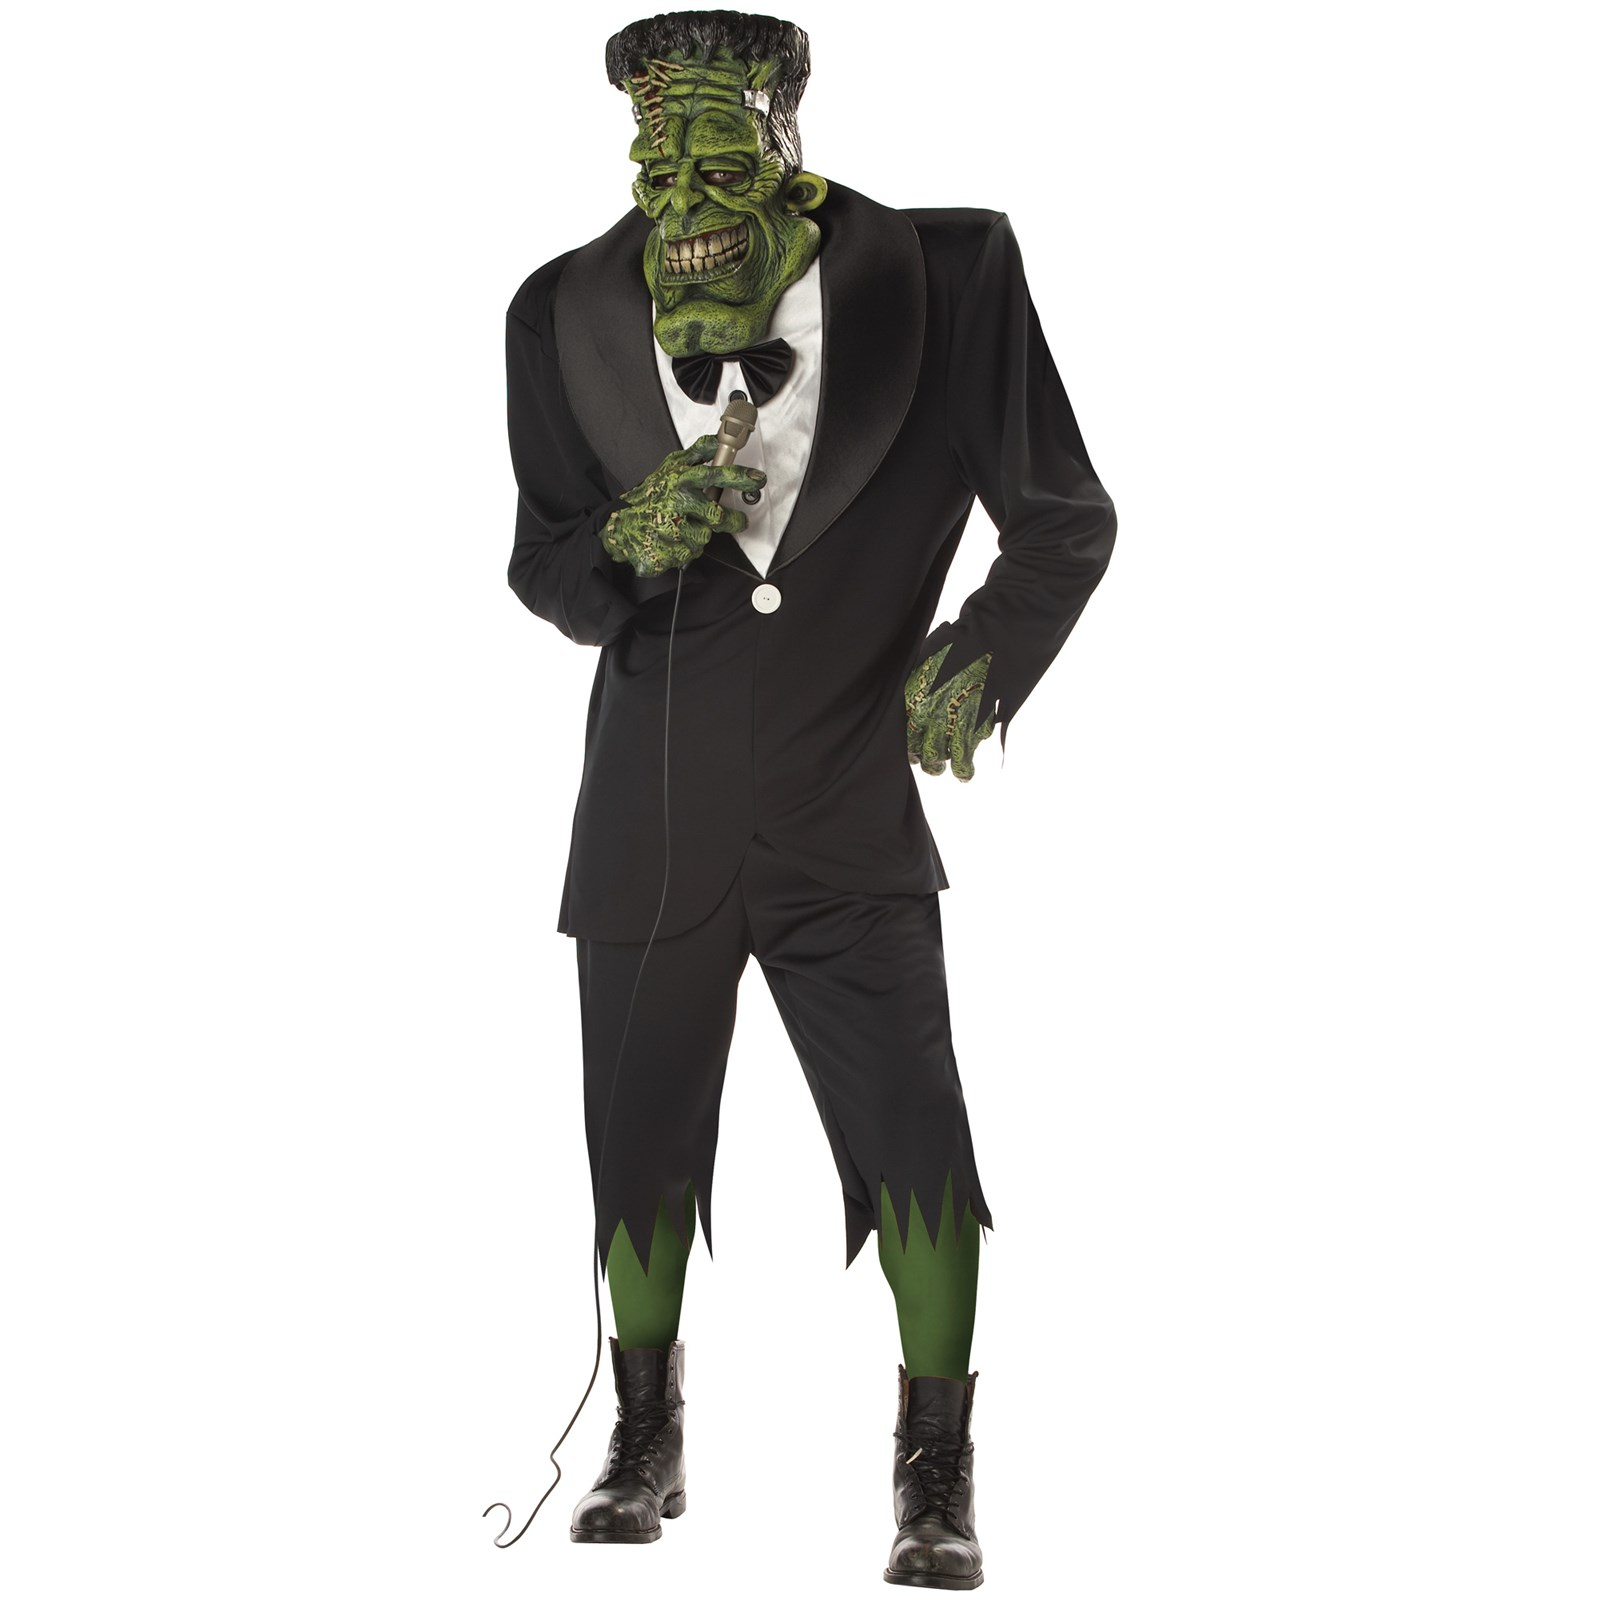 Frankenstein Costumes for Men